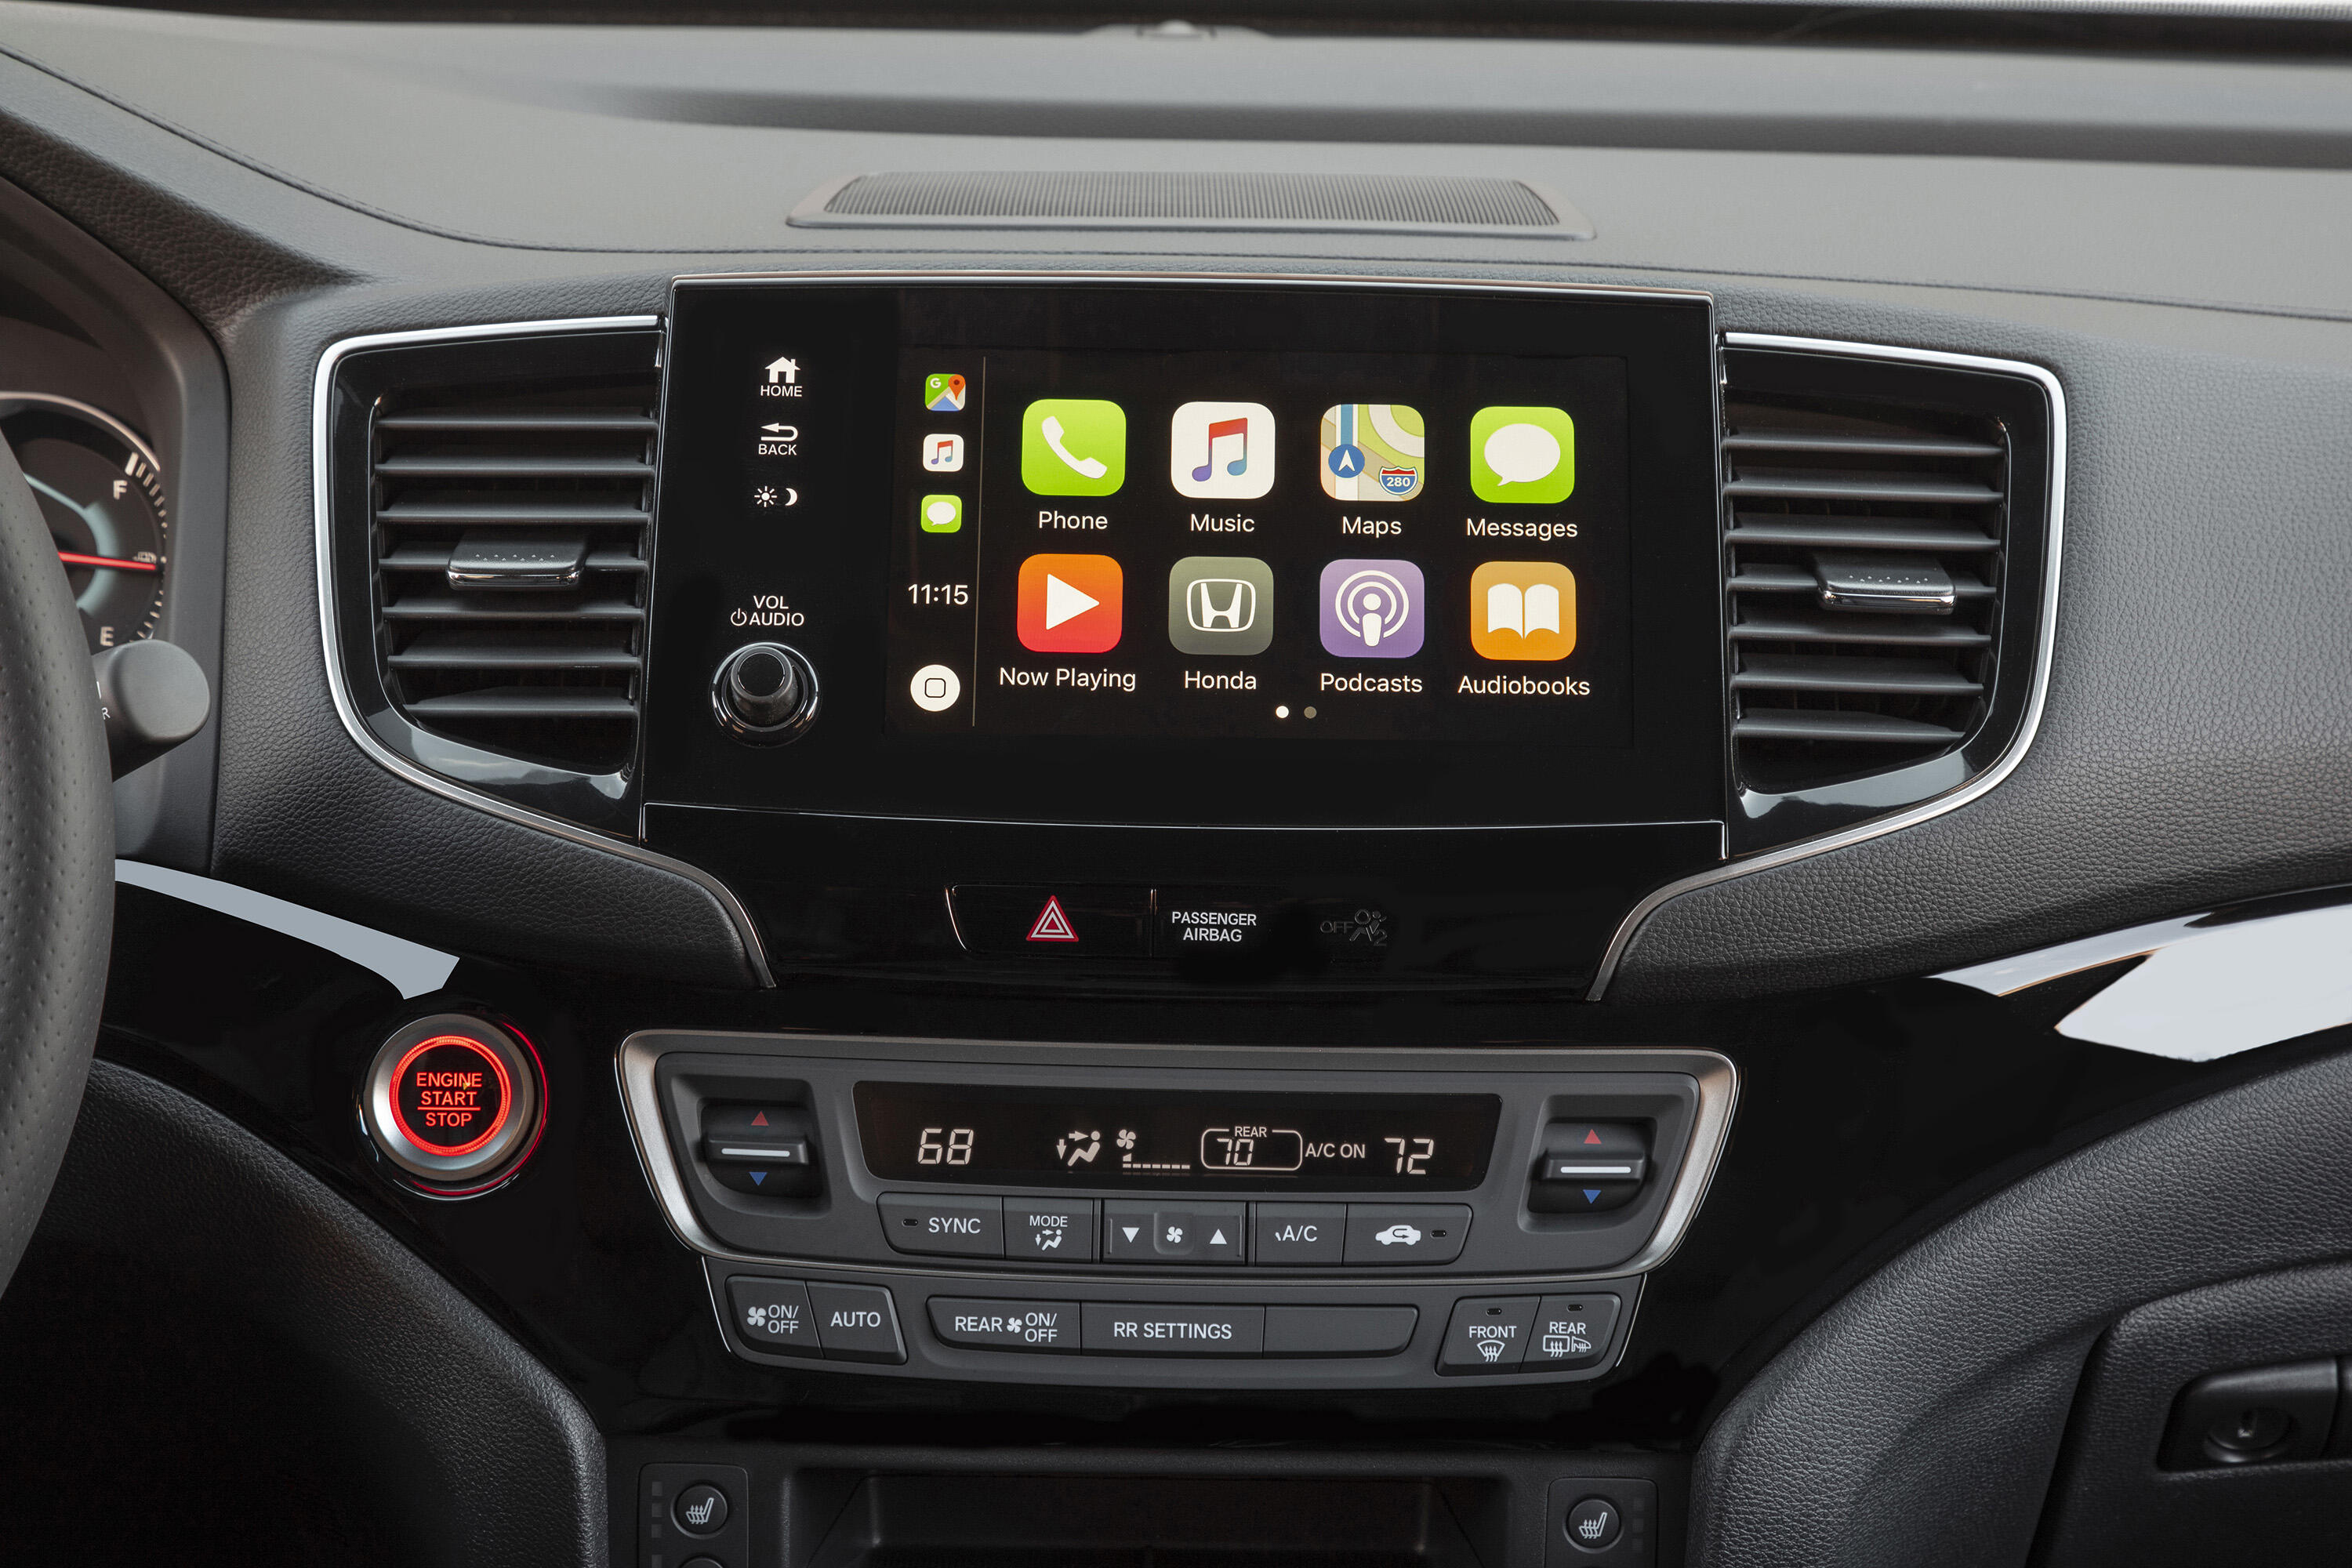 Apple iPhone may let you control your car's HVAC, radio and more, report says